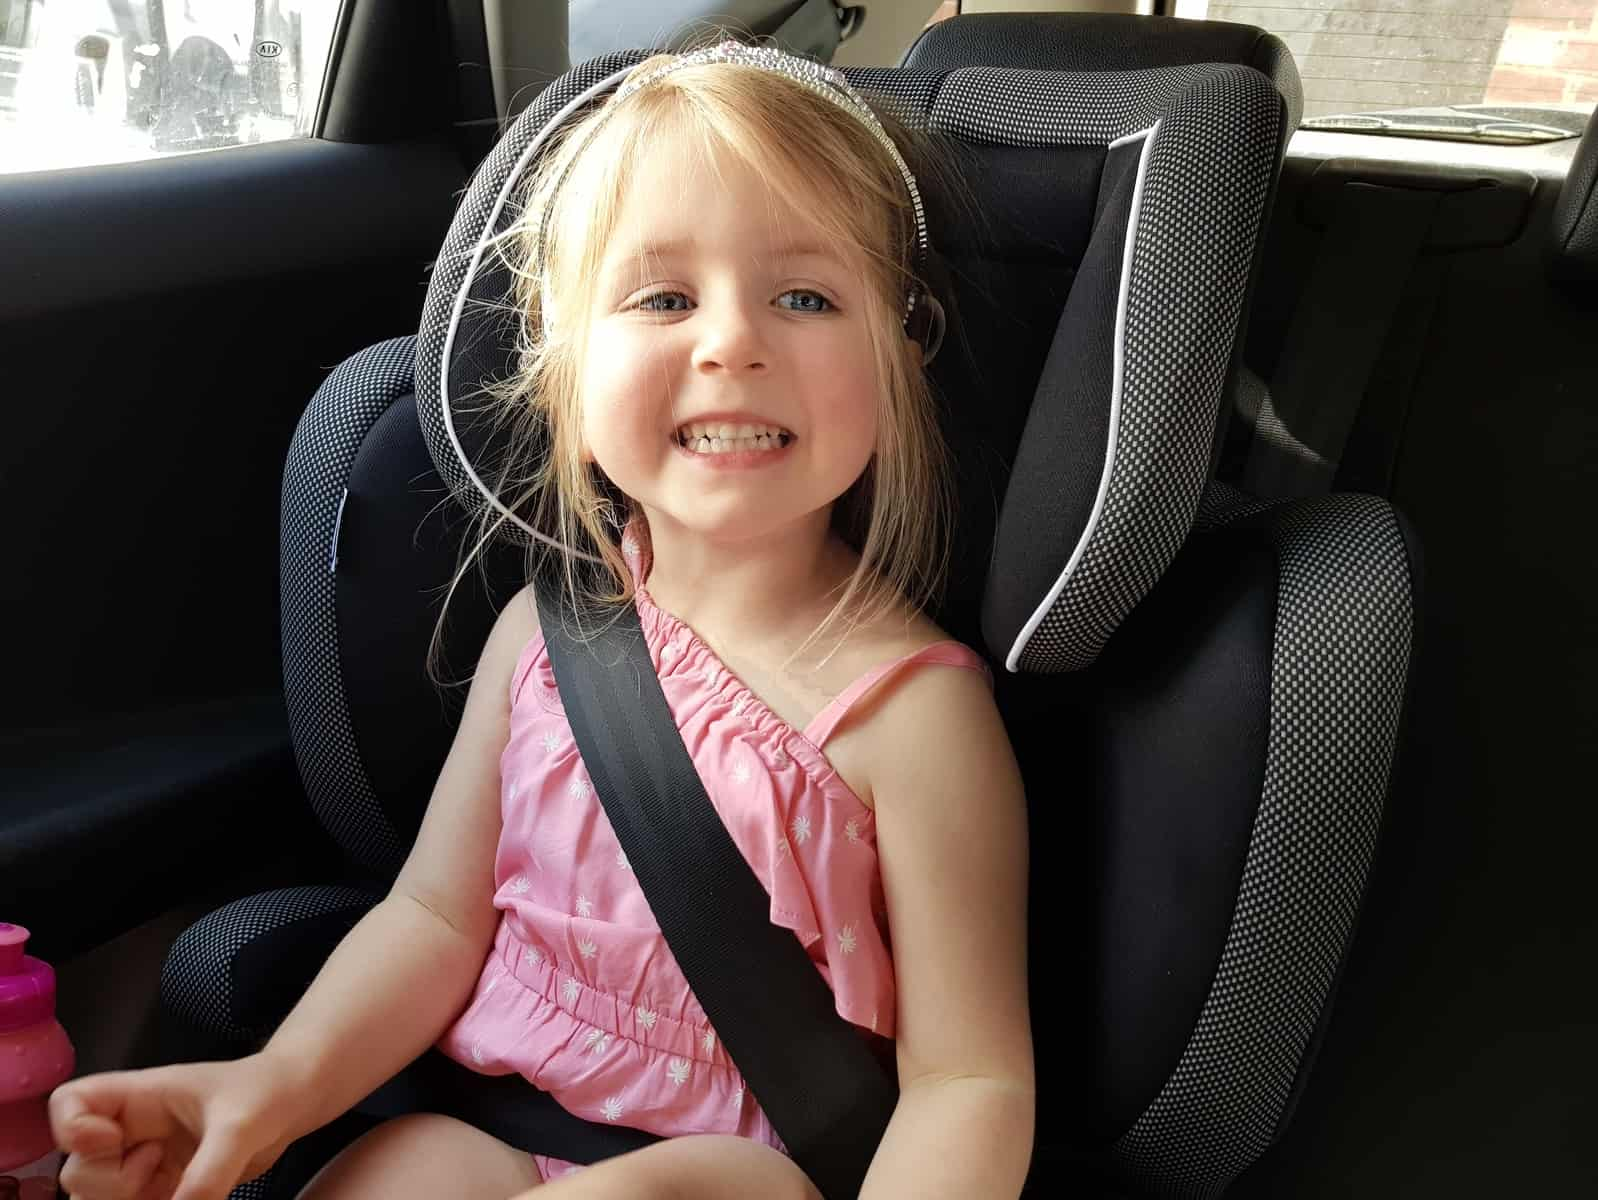 Little girl in pink outfit sat in car seat smiling